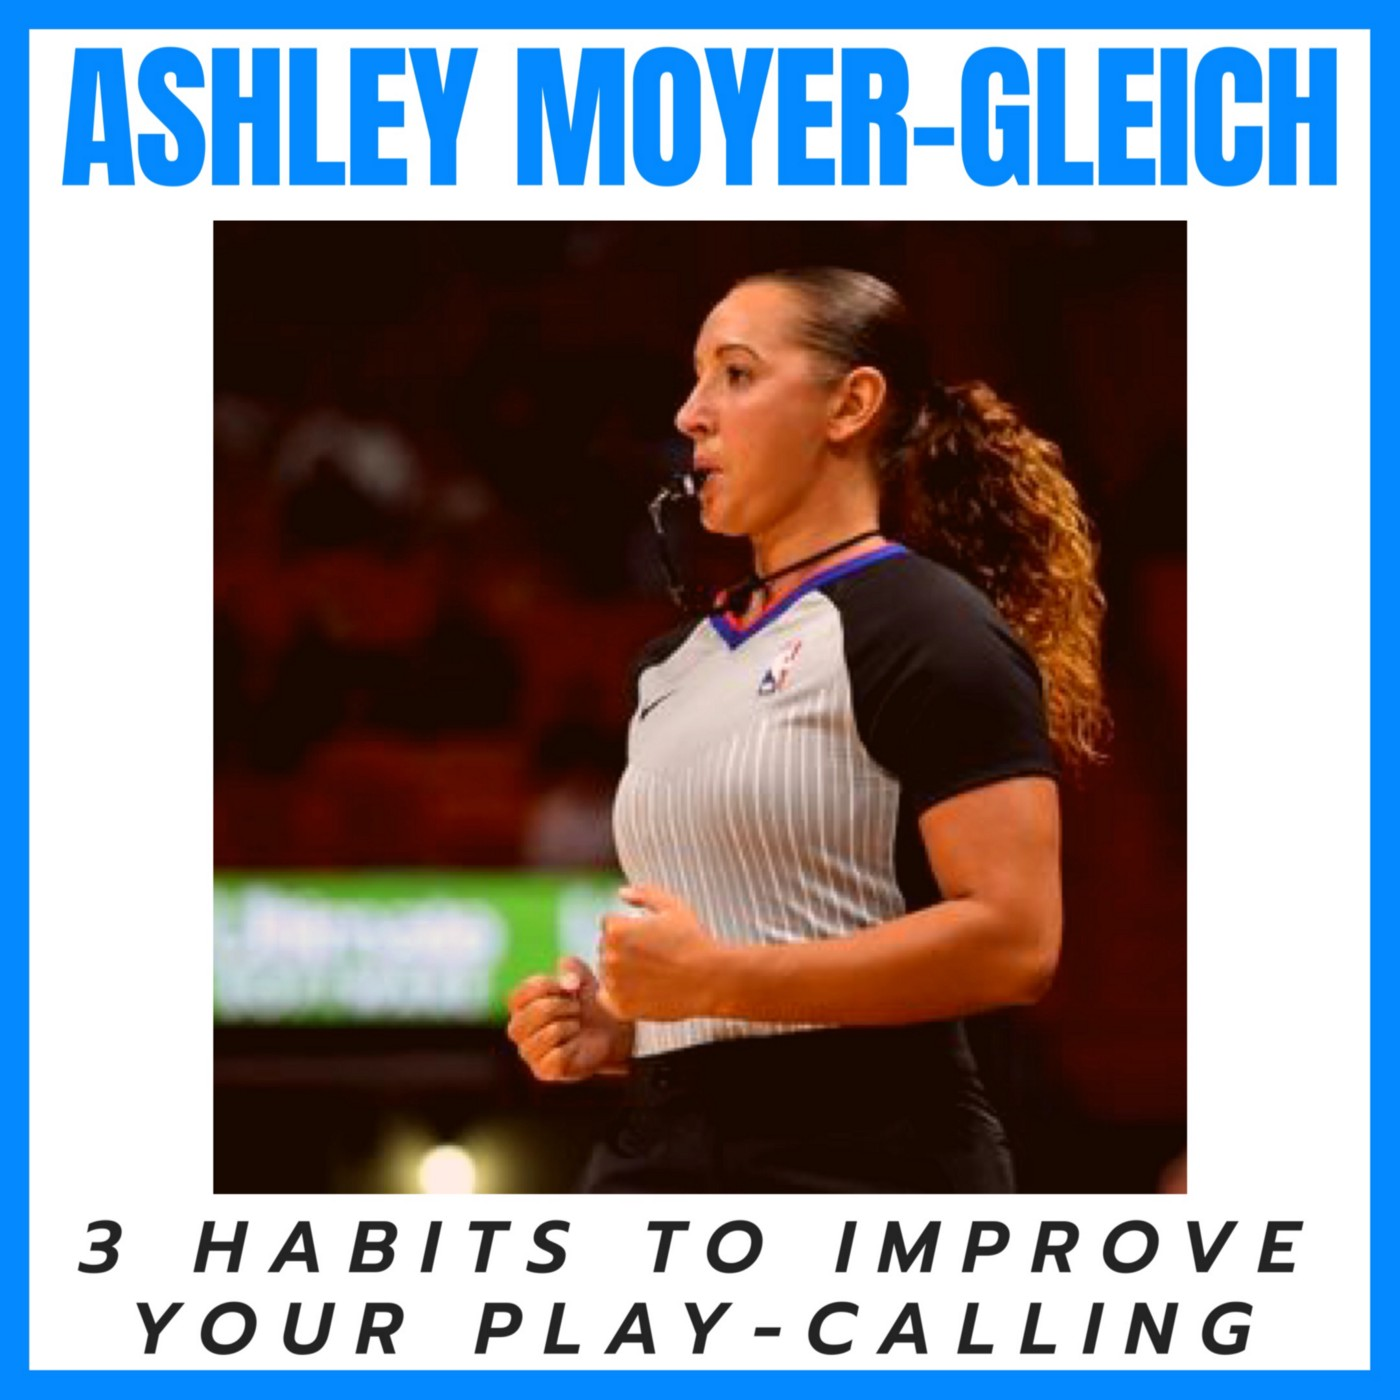 3 habits to improve your play-calling w/ Ashley Moyer-Gleich